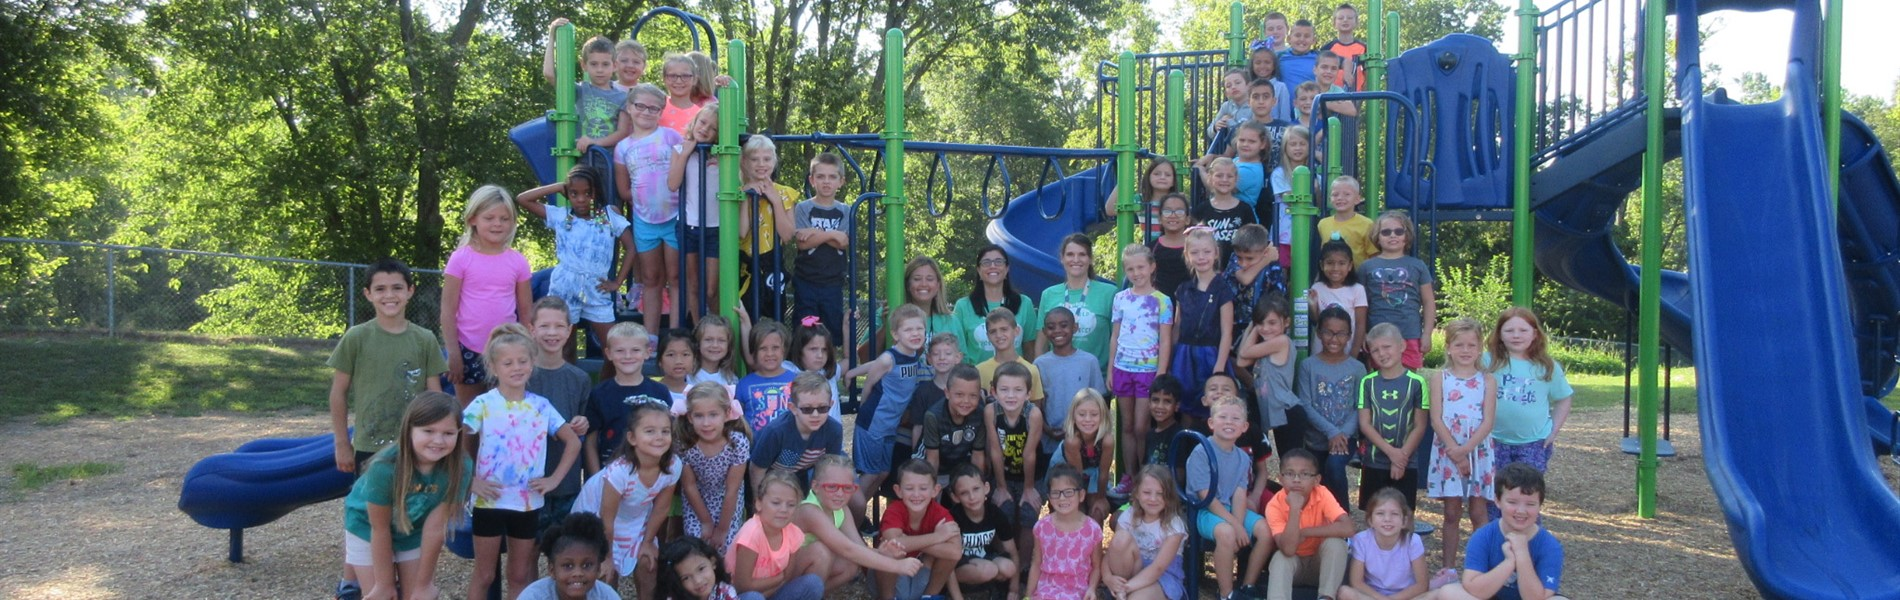 Class Photo on the Playground